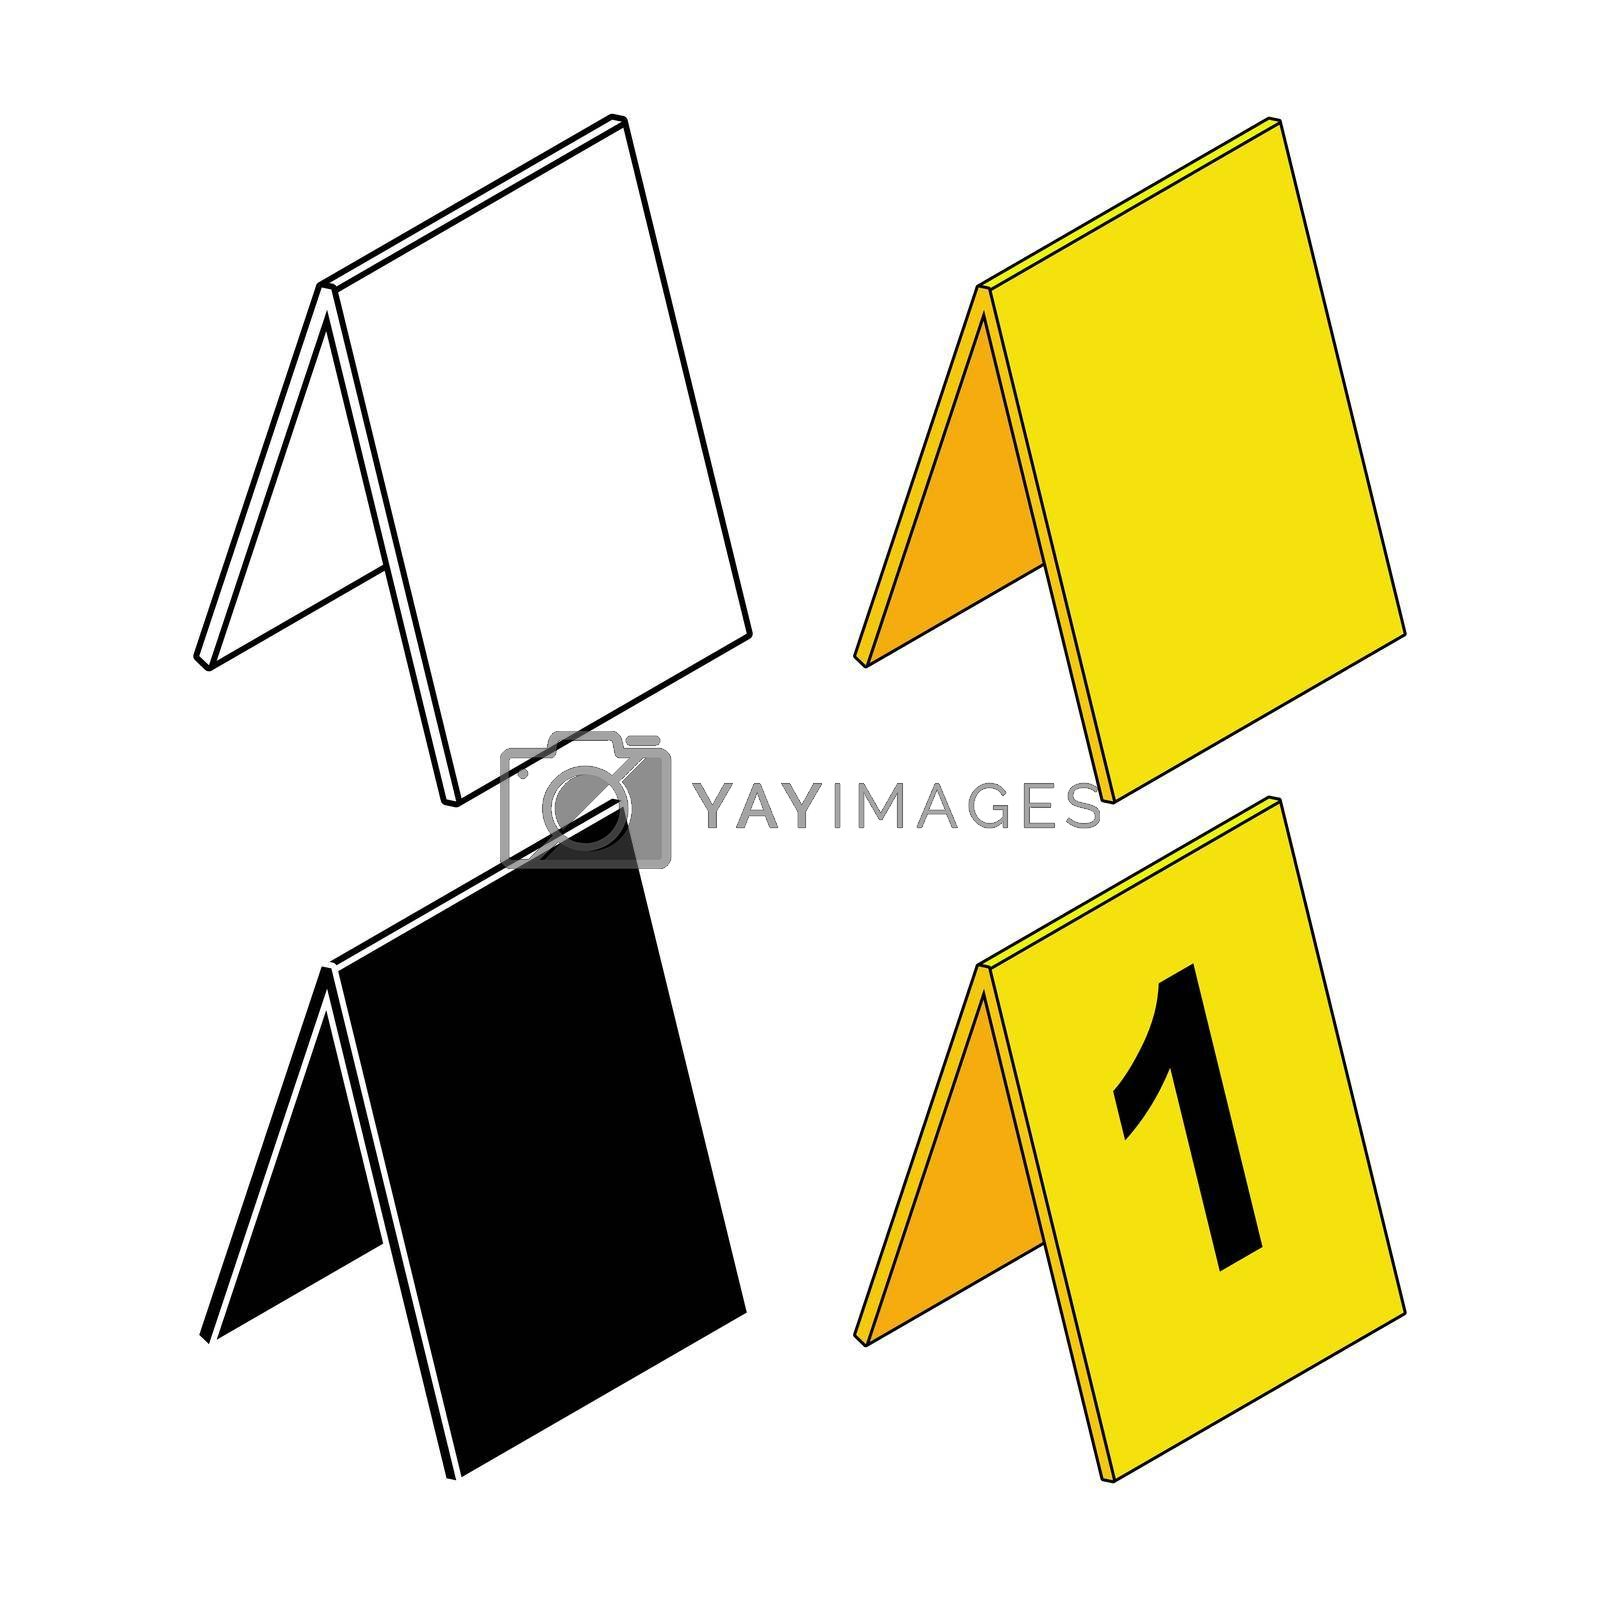 Crime scene markers set. Criminalistics label icon collection. Empty or blank outline and silhouette symbol. Vector illustration isolated on white background.